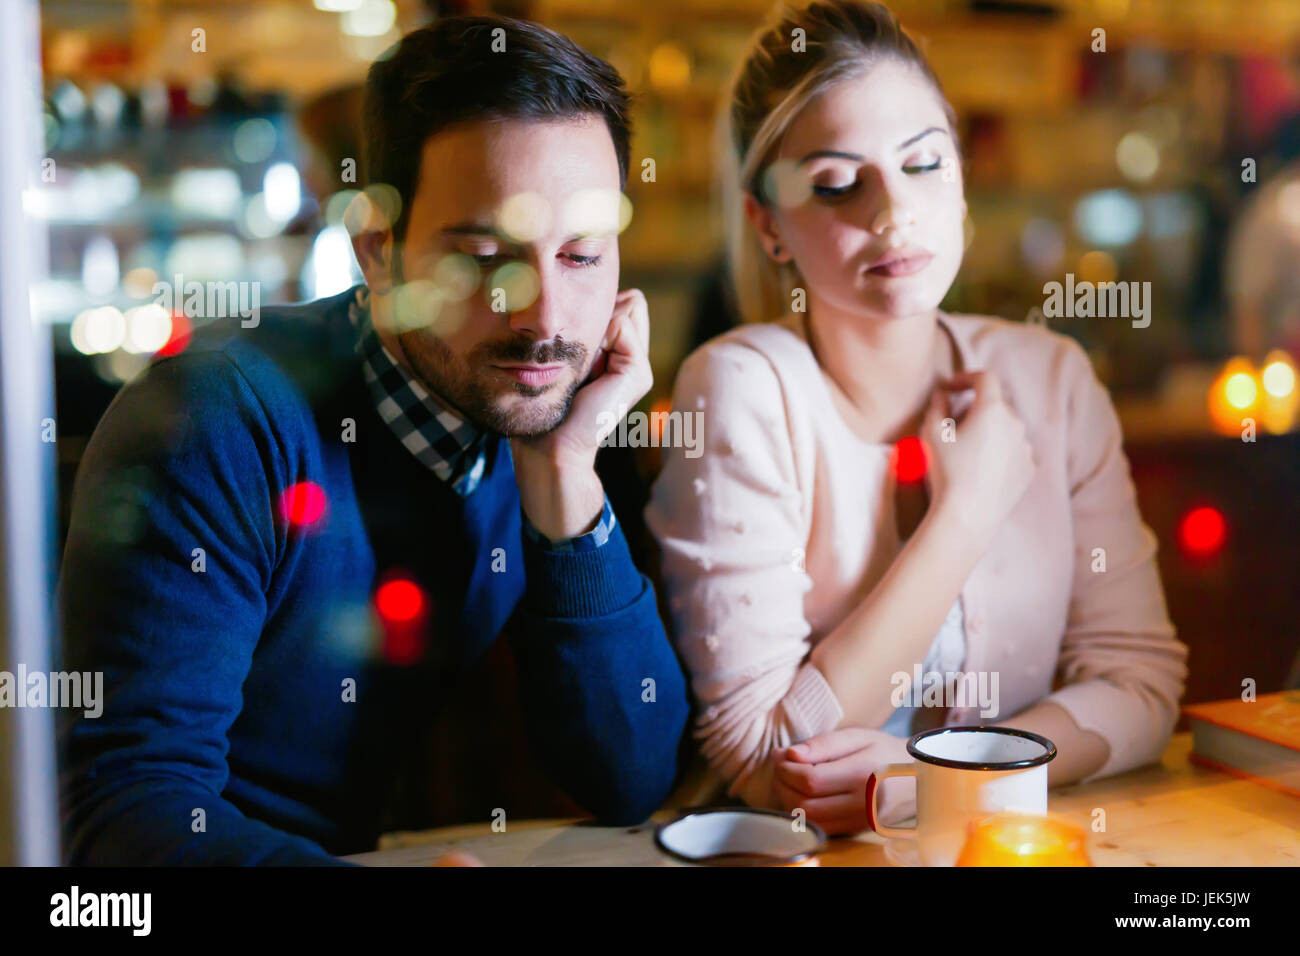 Sad couple having conflict and relationship problems sitting in bar - Stock Image